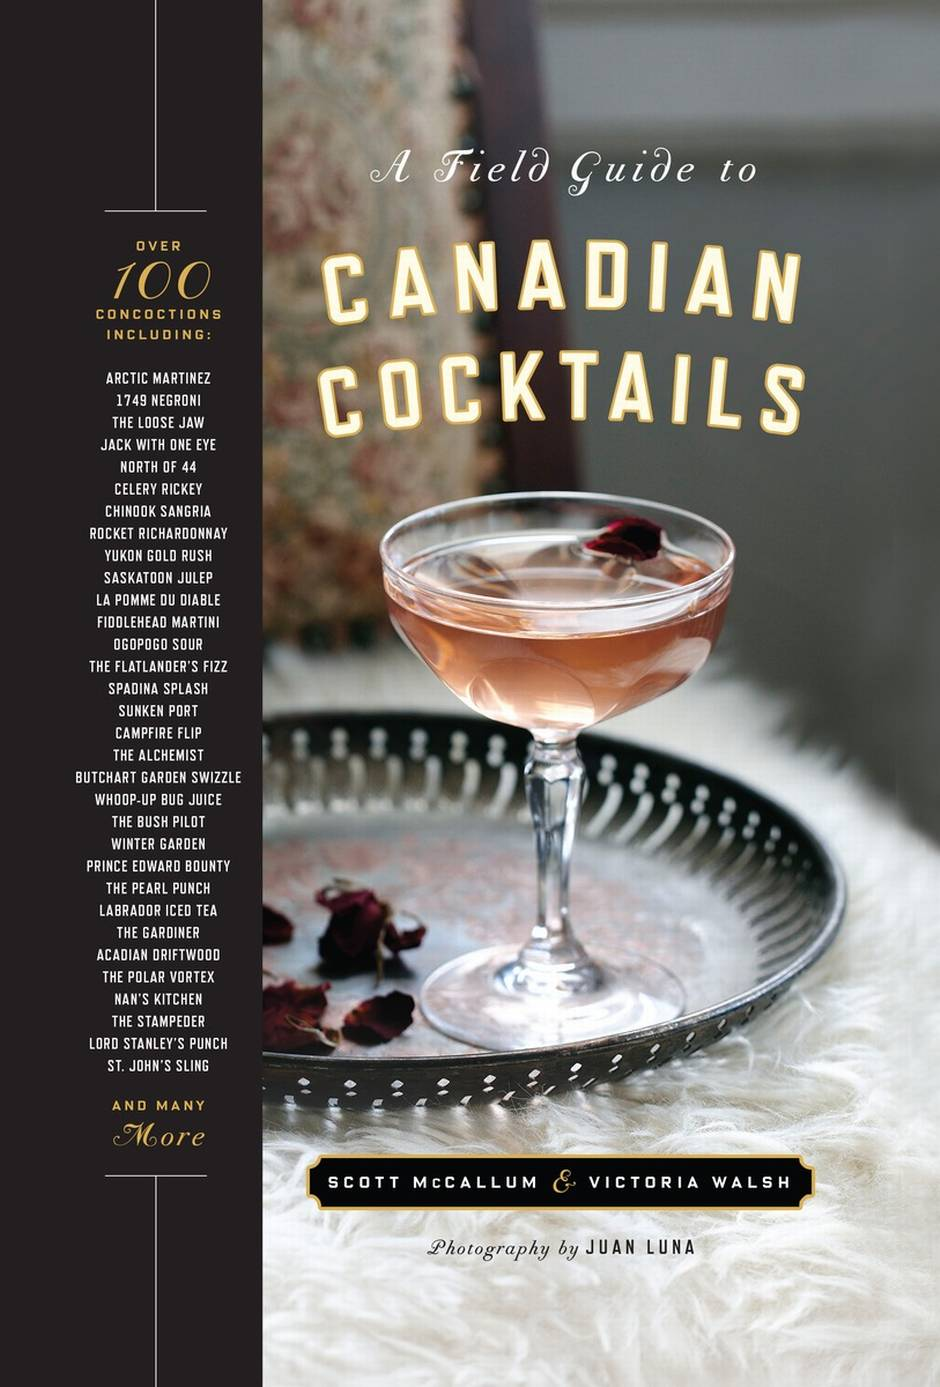 Excerpted from Drinks: A User's Guide by Adam McDowell. Copyright © 2016 Adam McDowell. Published by TarcherPerigee, a division of Penguin Random House LLC. Reproduced by arrangement with the Publisher. All rights reserved.